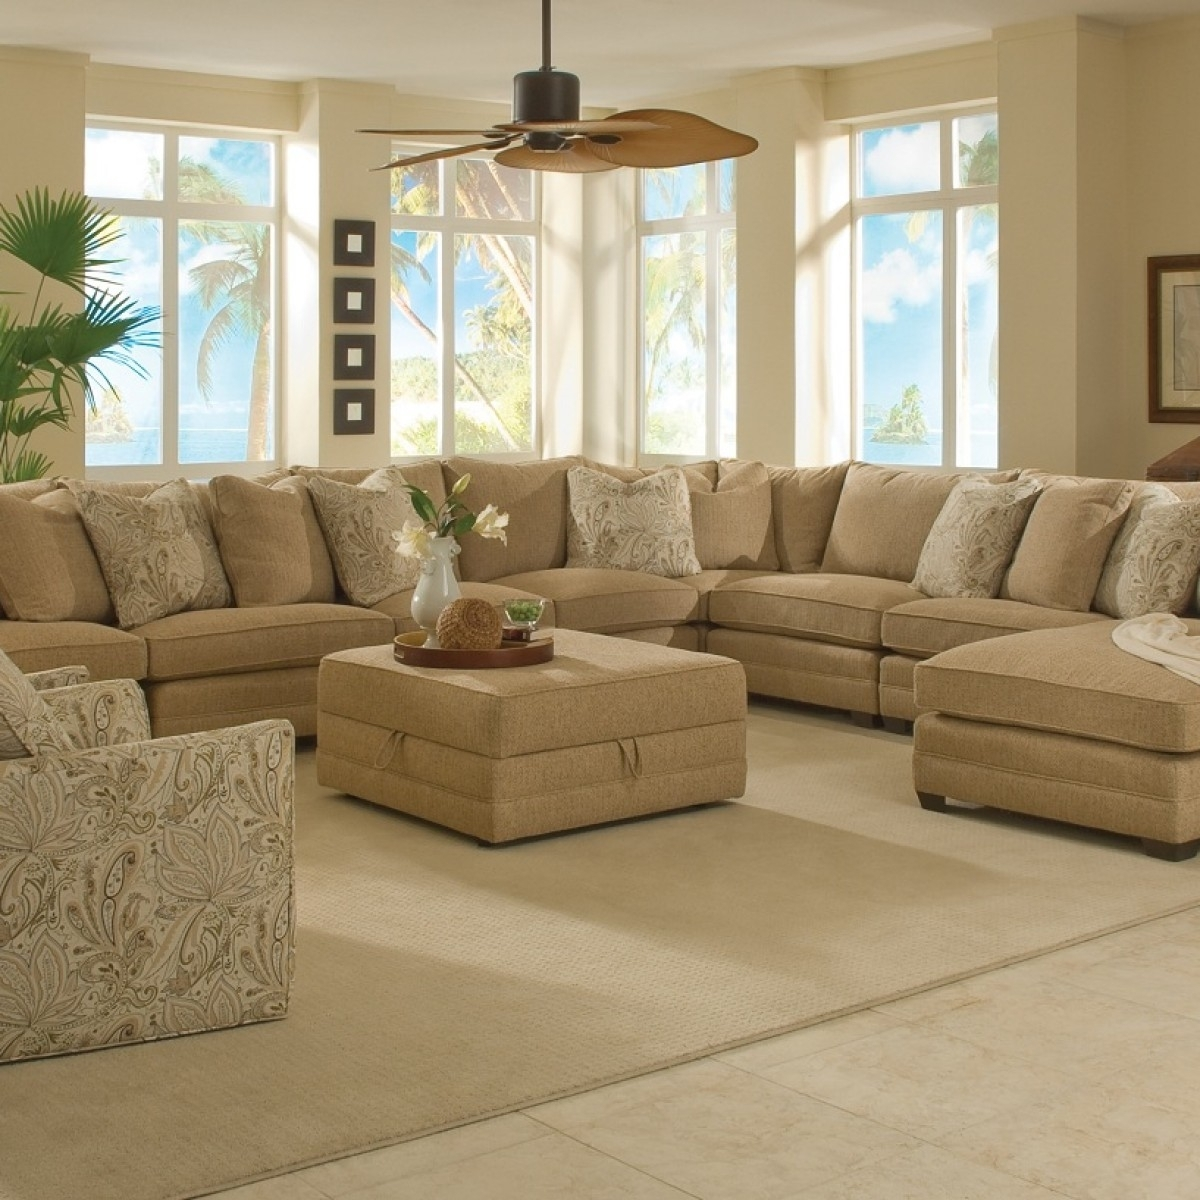 Factors To Consider Before Buying An Extra Large Sectional Sofa Pertaining To Extra Large Sofas (Image 8 of 10)